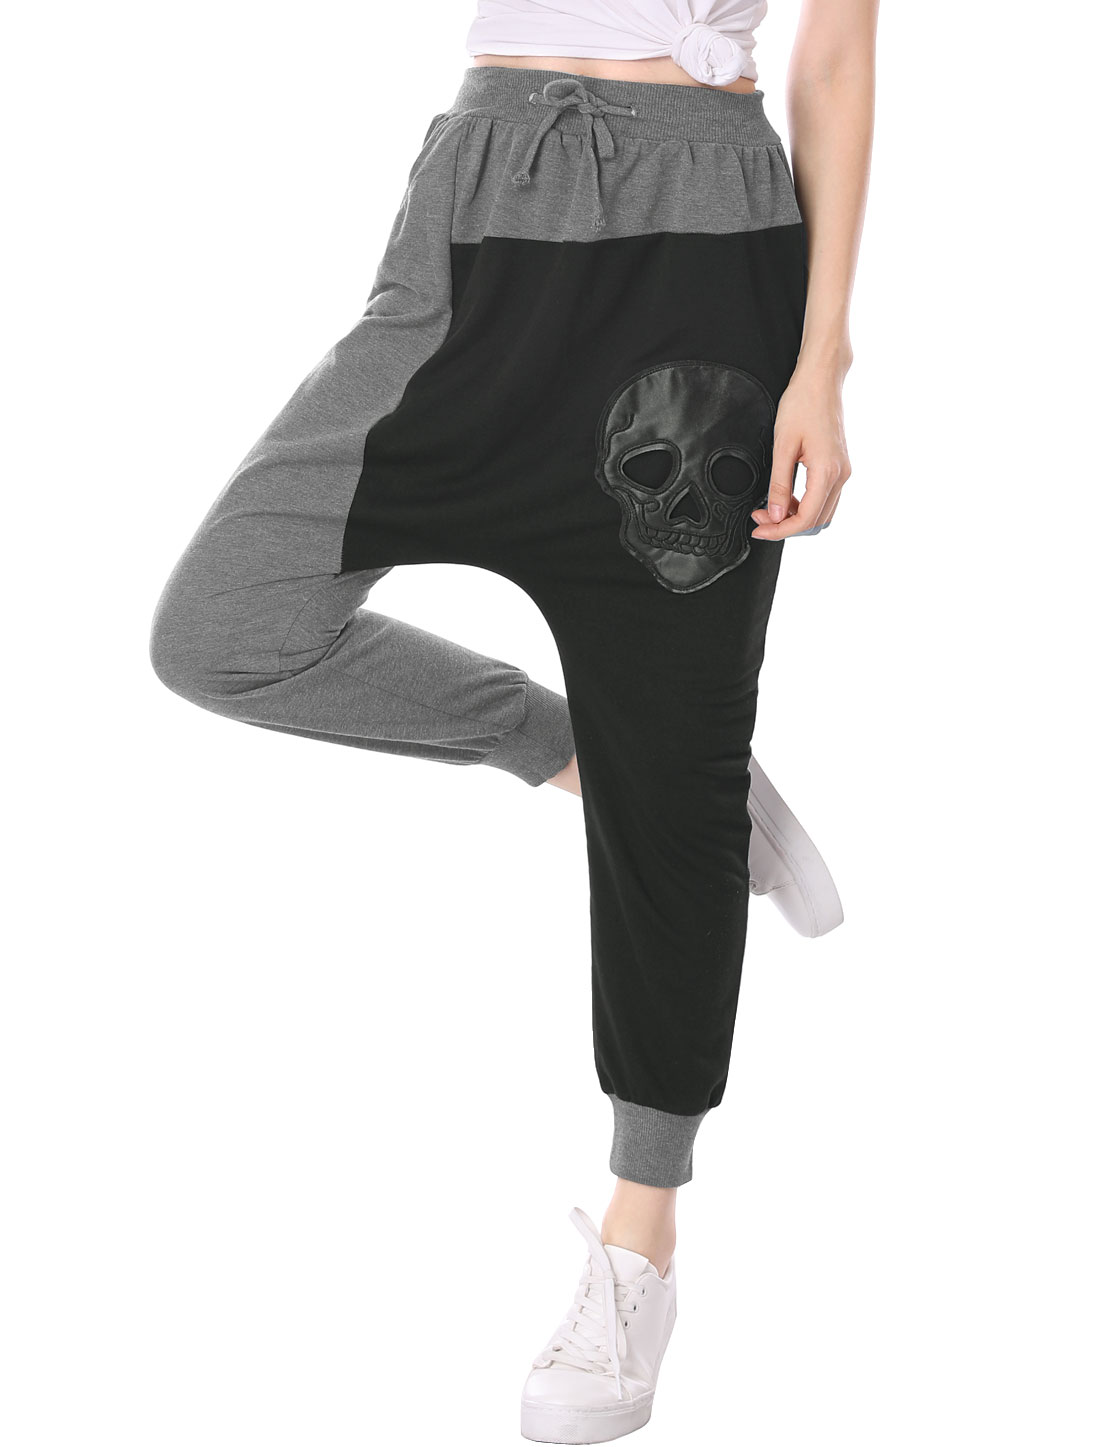 Lady Mid Rise PU Skull Design Harem Pants Dark Gray Black XS